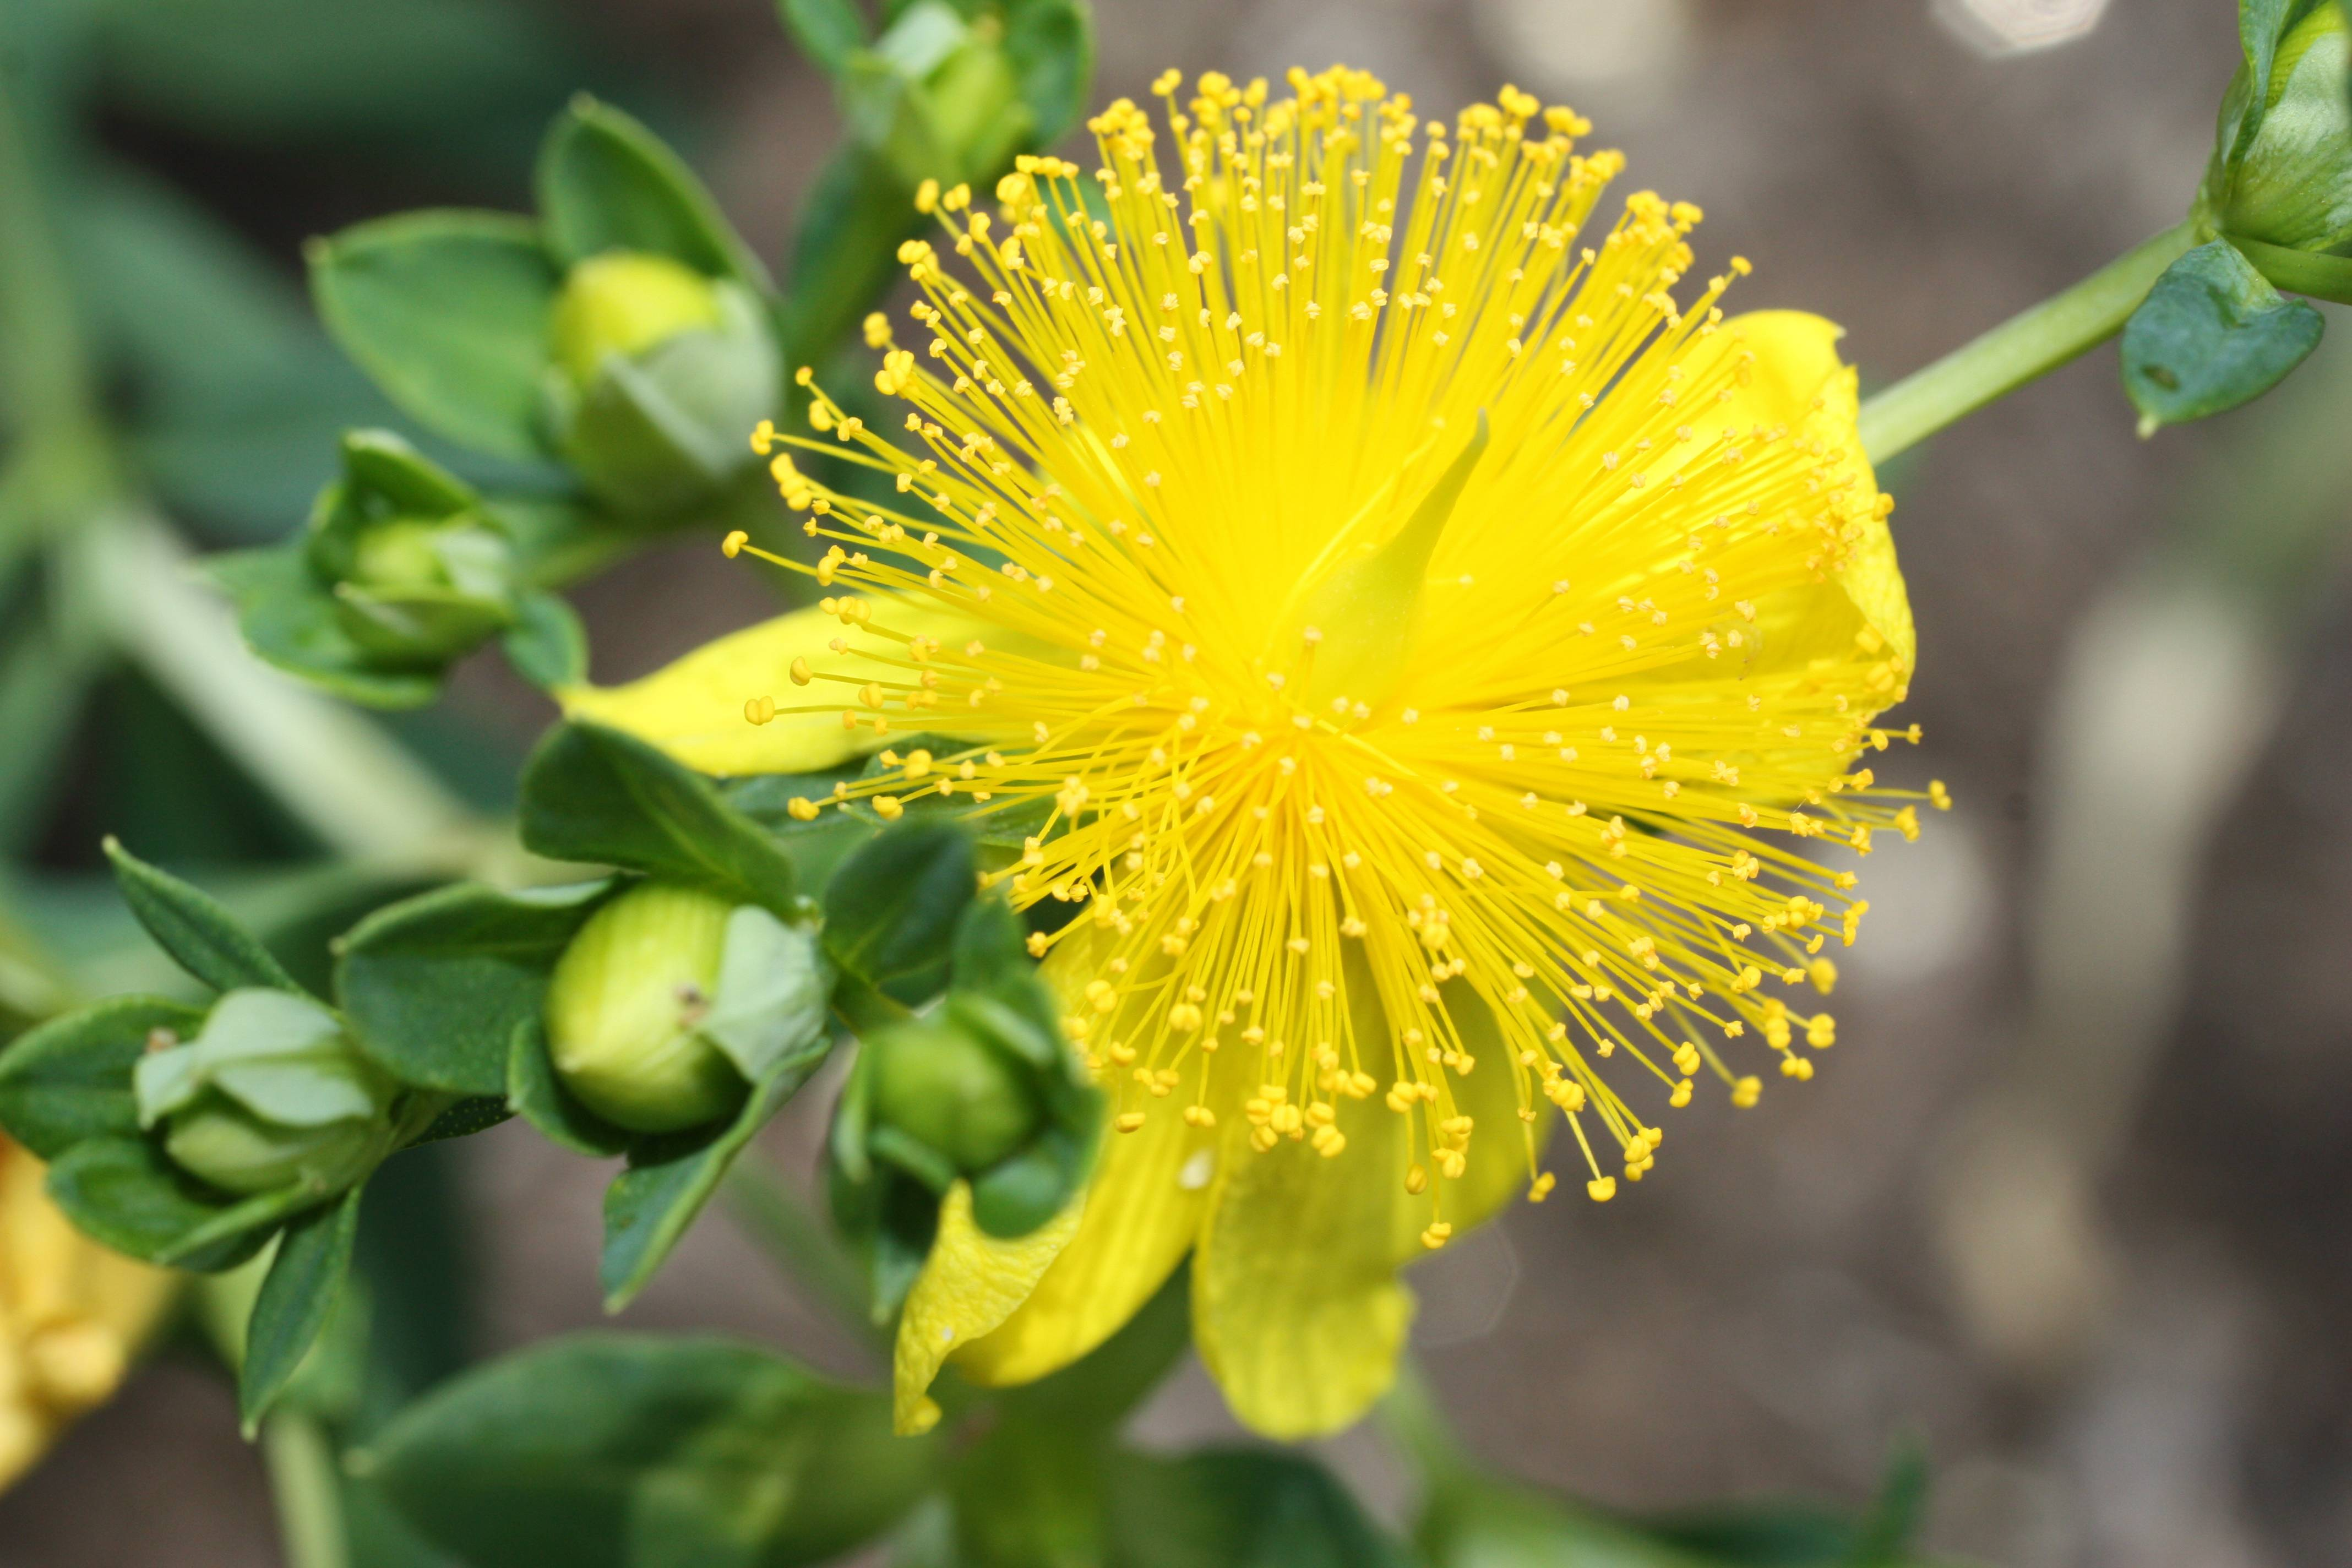 St. John's Wort: The Benefits and the Dangers